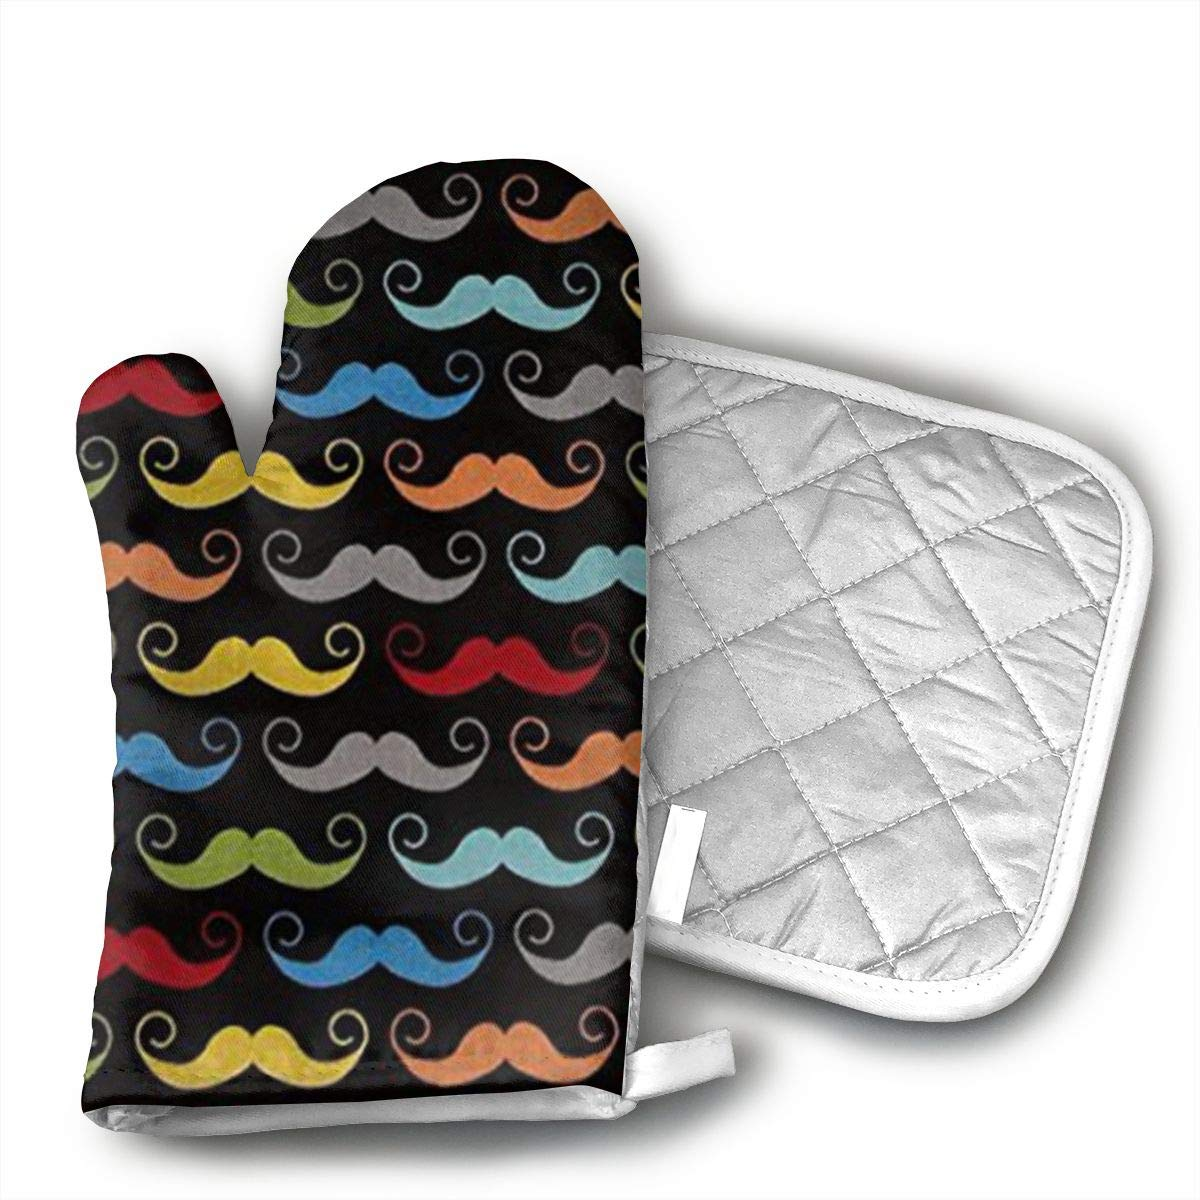 FGXQB Blake Geekly Chic Mustache Black Oven Mitts Kitchen Cooking Cotton Microwave Oven Gloves Mitts Pot Pad Heat Proof Protected Gloves